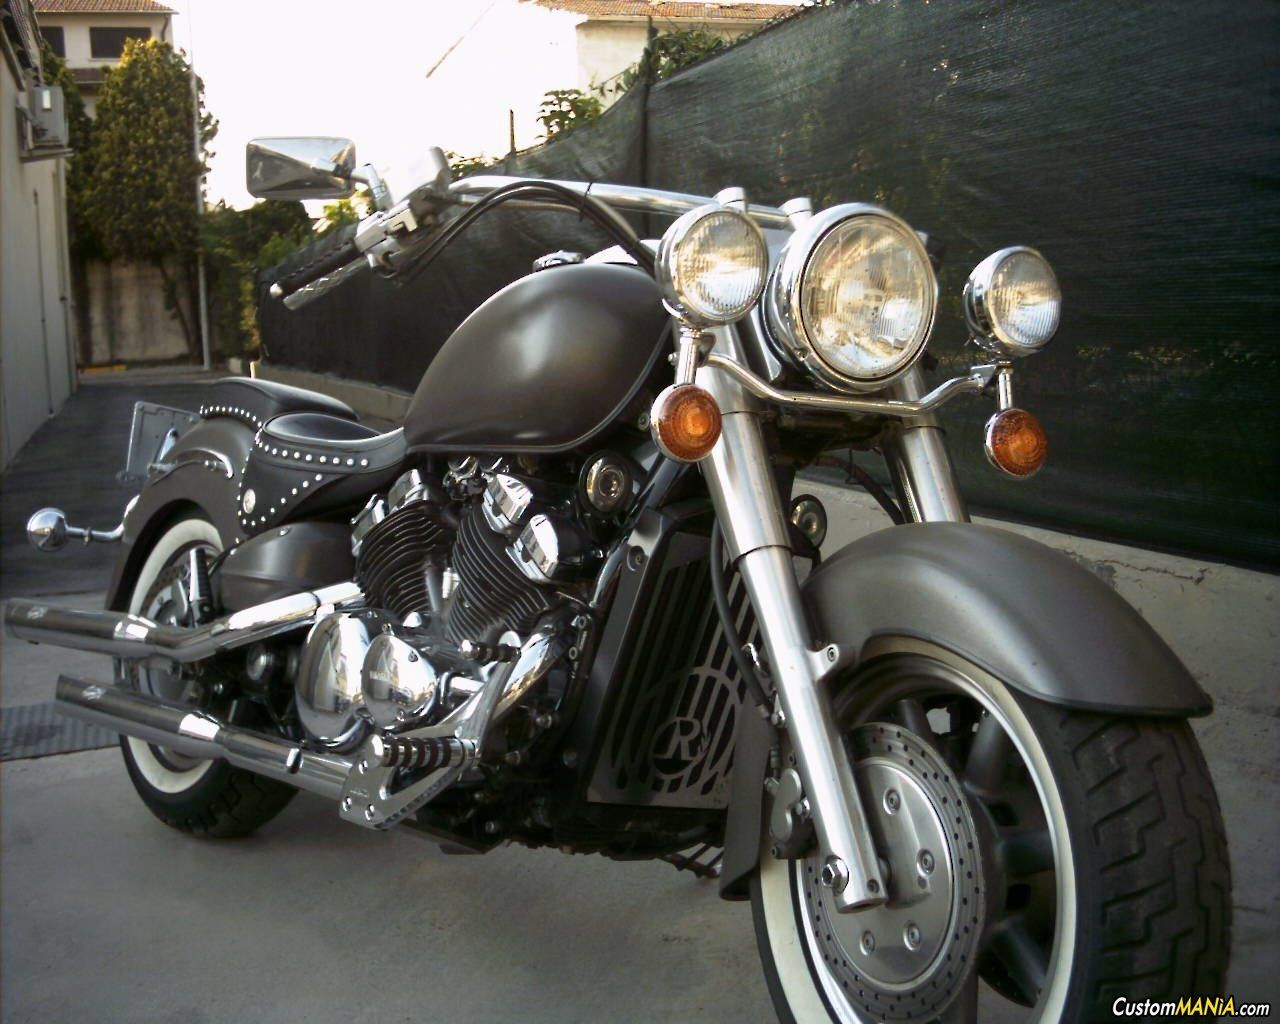 Yamaha Xvz 1300 Royal Star